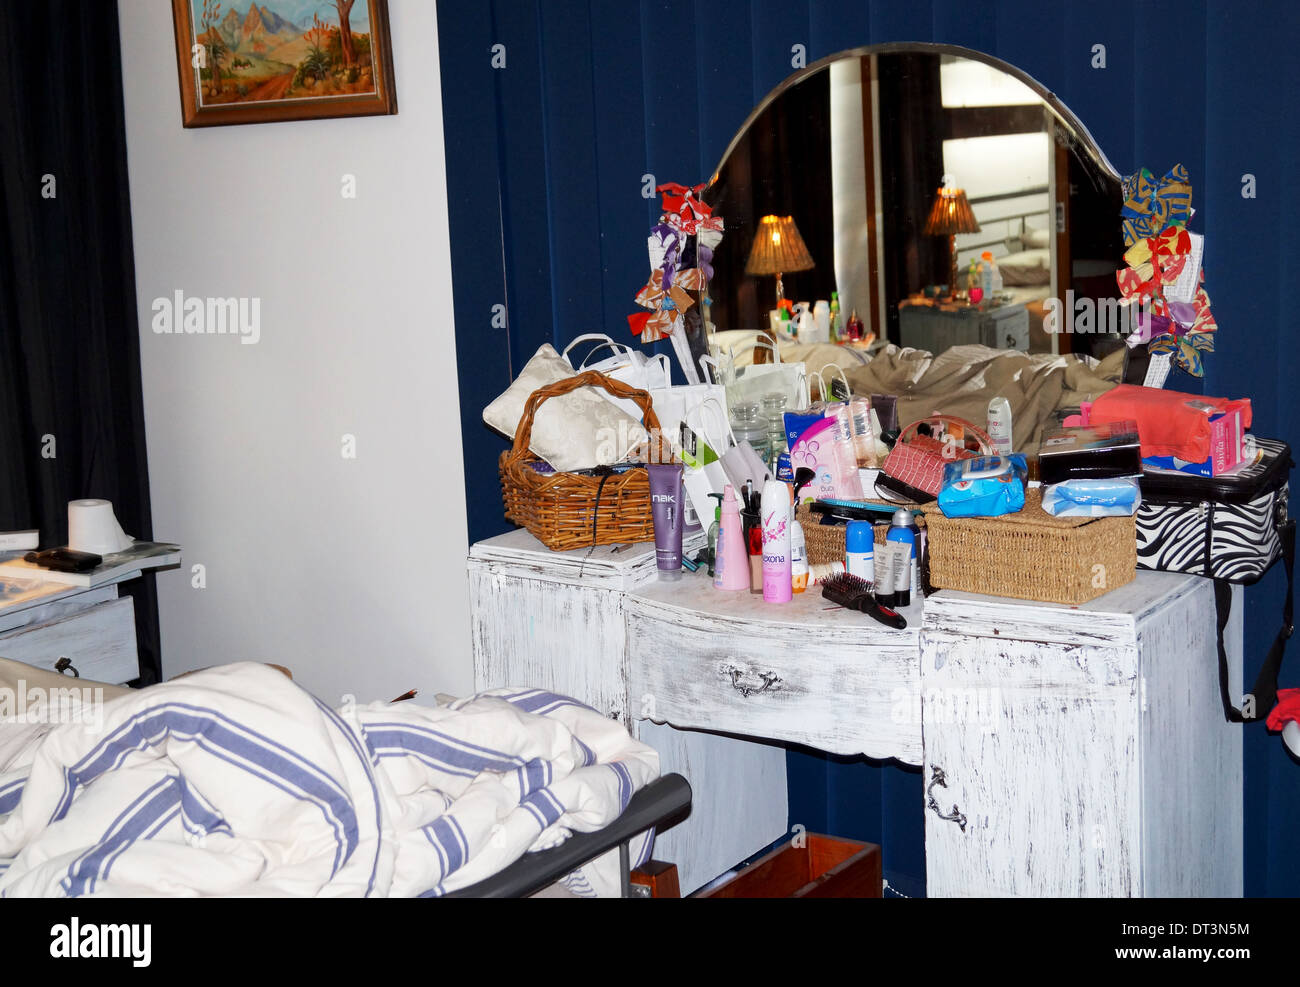 dresser stockfotos dresser bilder alamy. Black Bedroom Furniture Sets. Home Design Ideas